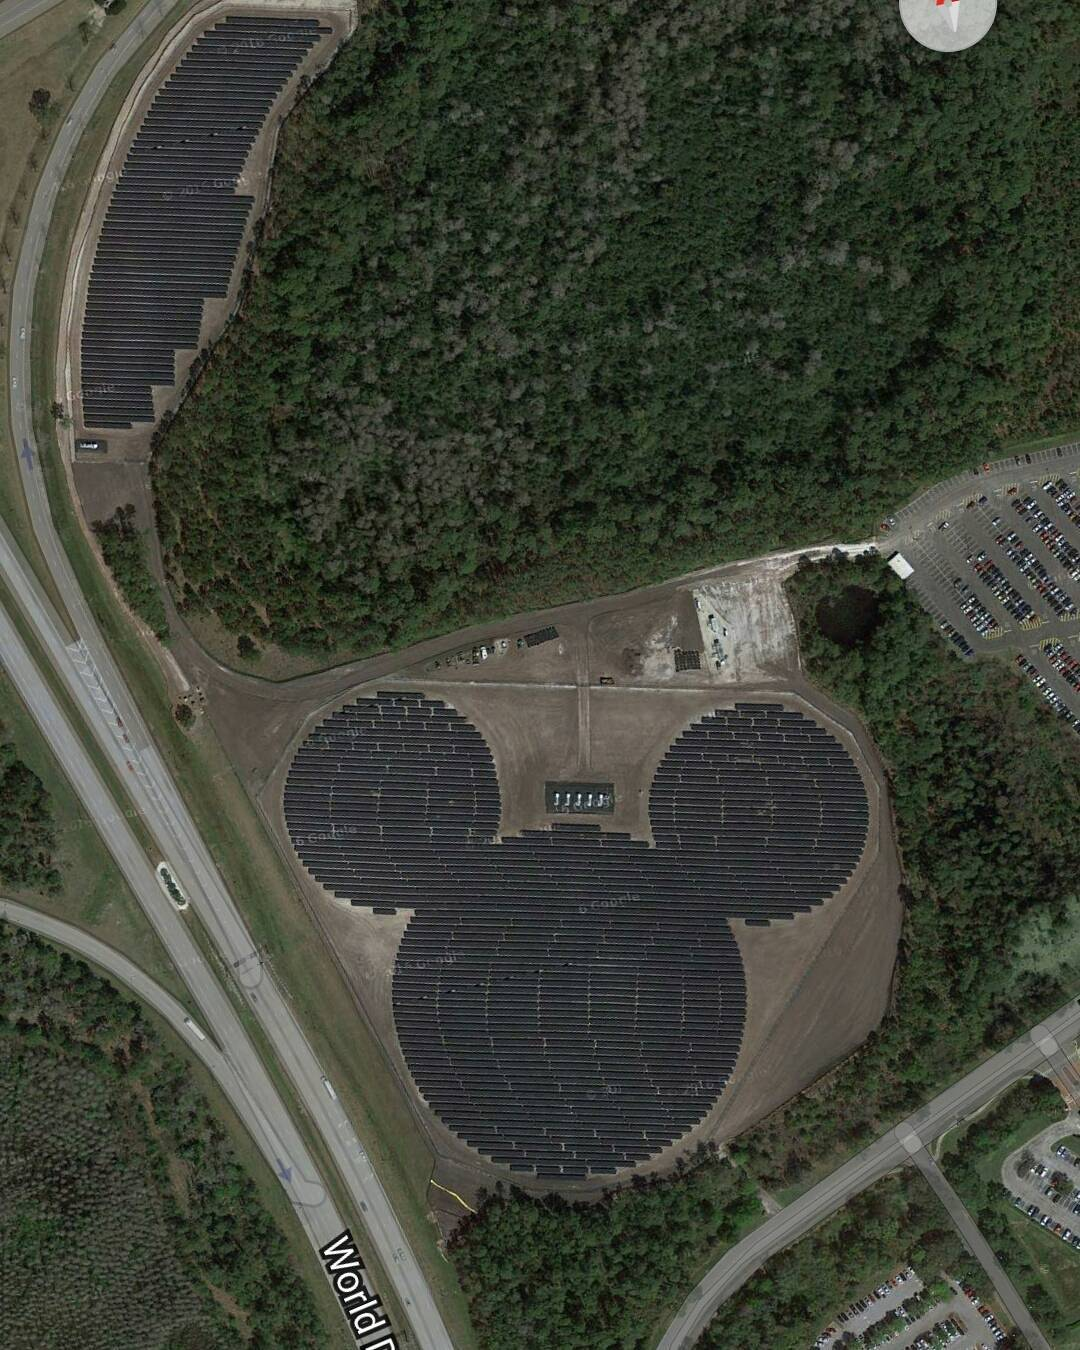 Drove past this solar pv farm a few times in the last couple of days. 48,000 solar pv panels supplying 5 megawatts of electricity into Walt Disney World Orlando